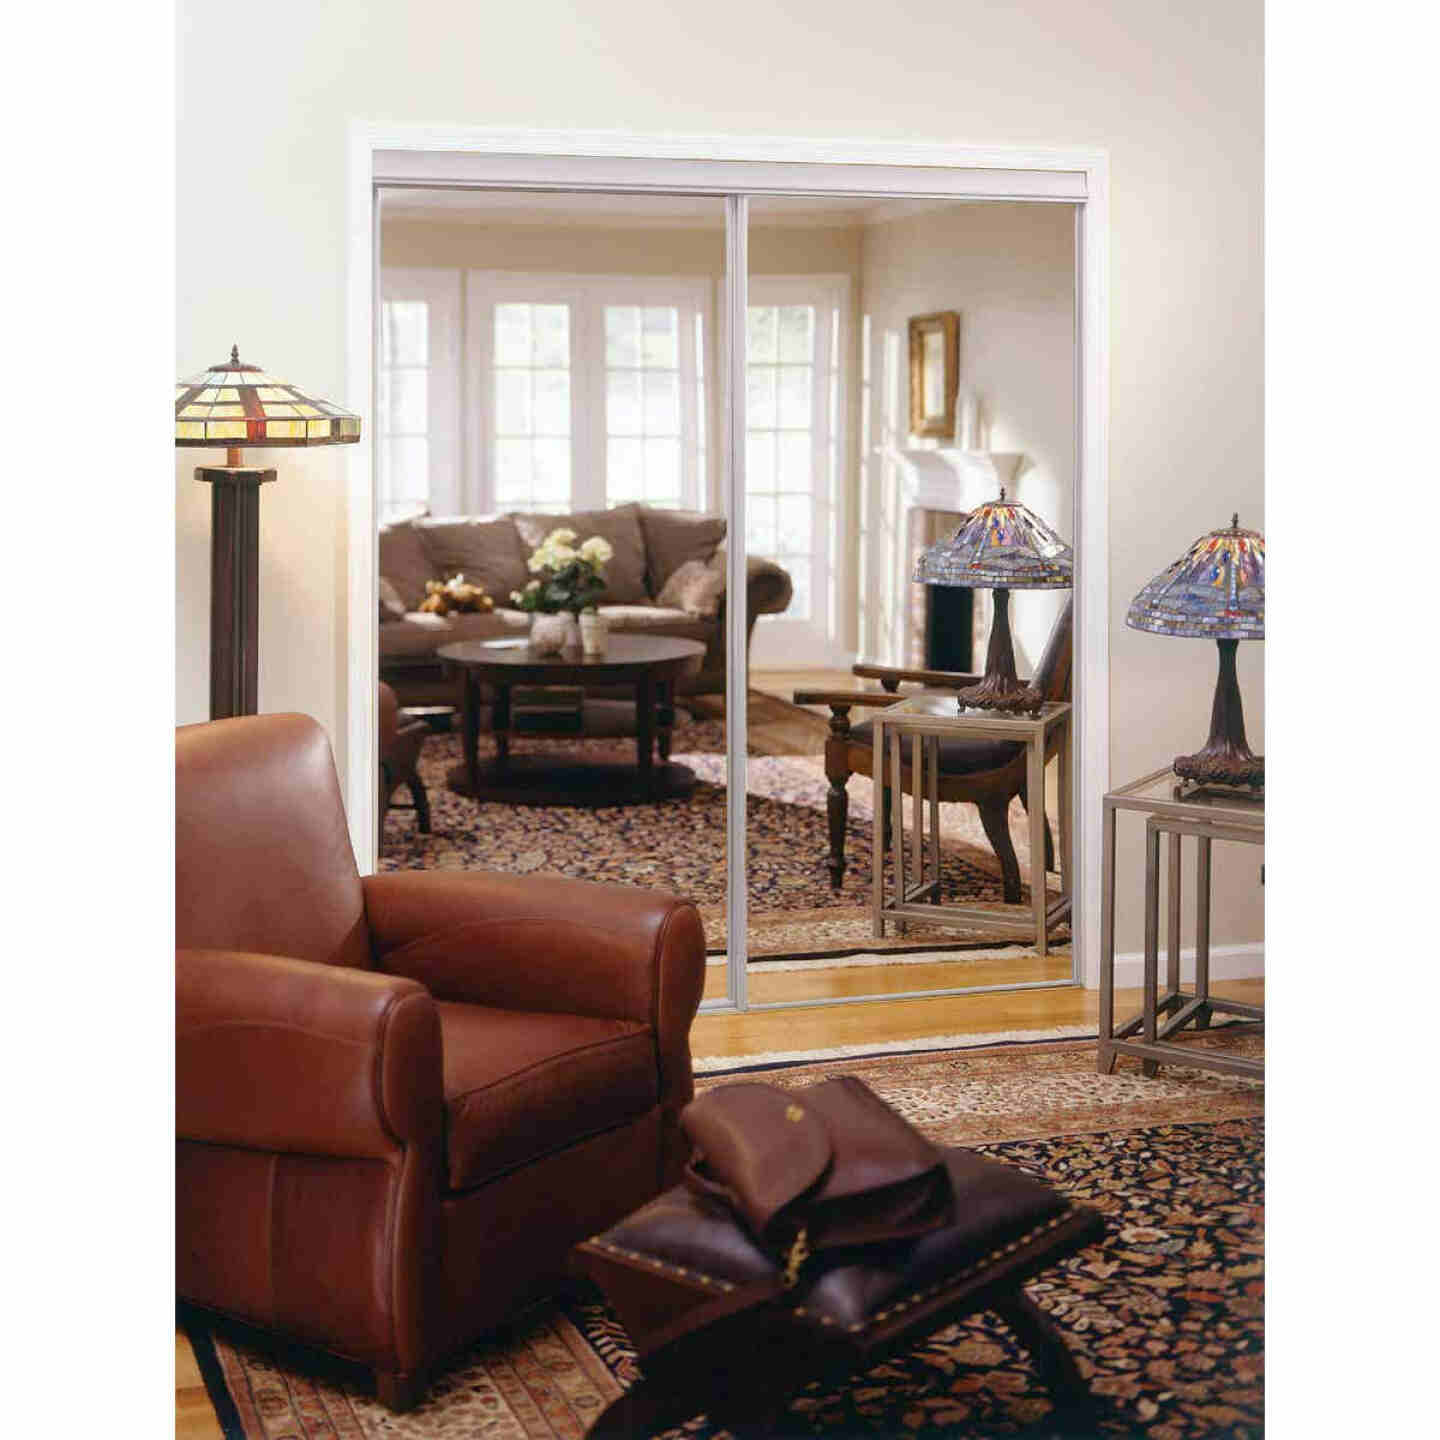 Erias 4050 Series 59 In. W. x 80-1/2 In. H. Bright White Top Hung Mirrored Bypass Door Image 1